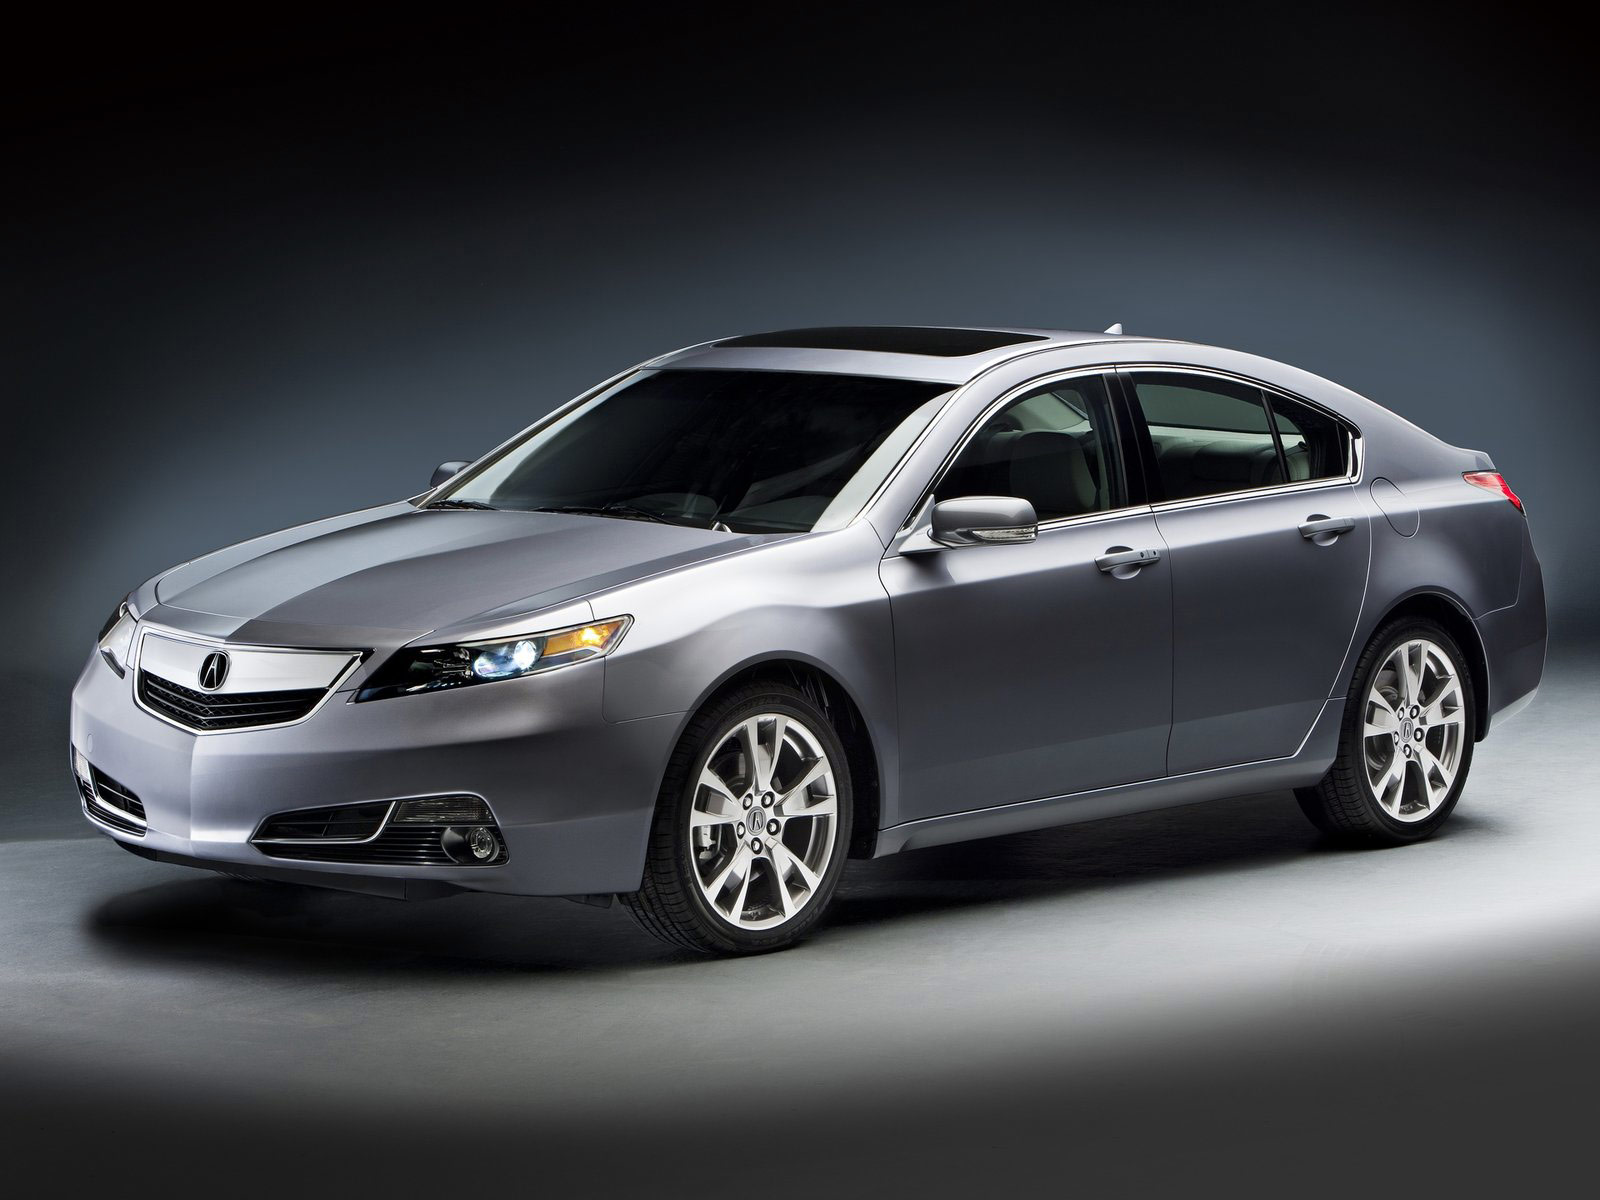 Sports Car New Acura Japanese Picture Tl Coupe - Medium